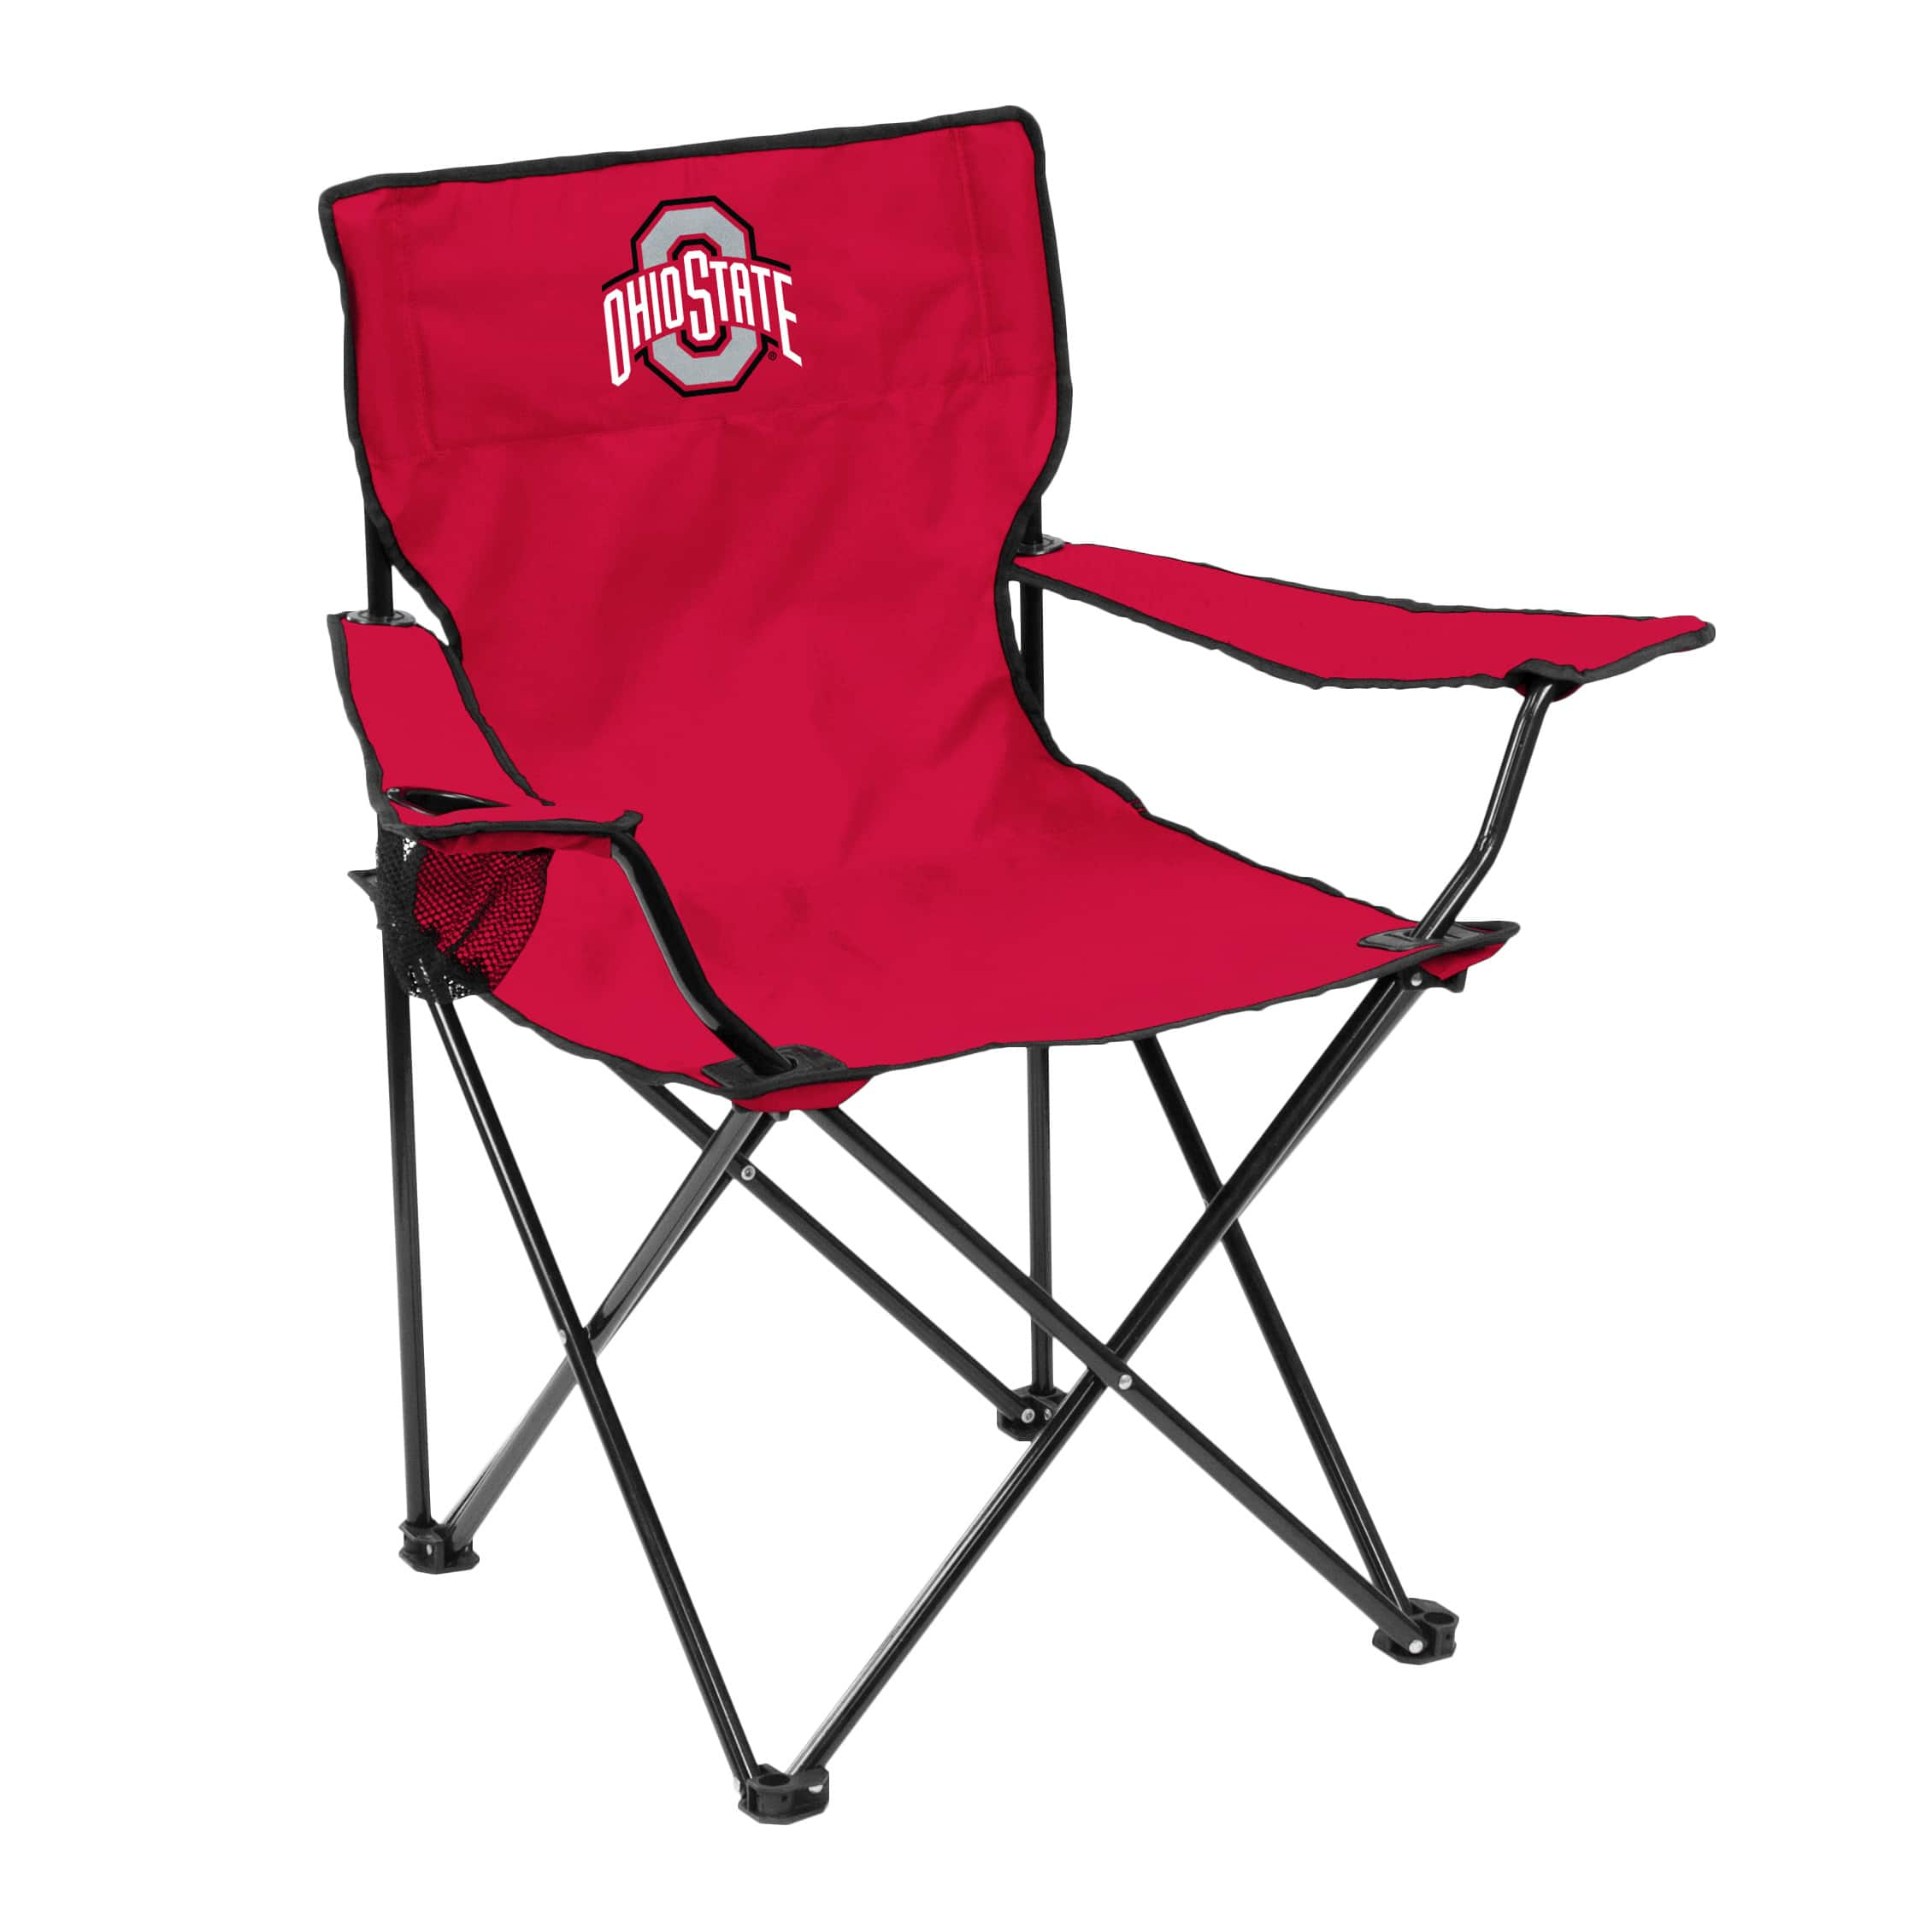 Ohio State Folding Chair $12 + Free Shipping @ Logo Brands - DEAD